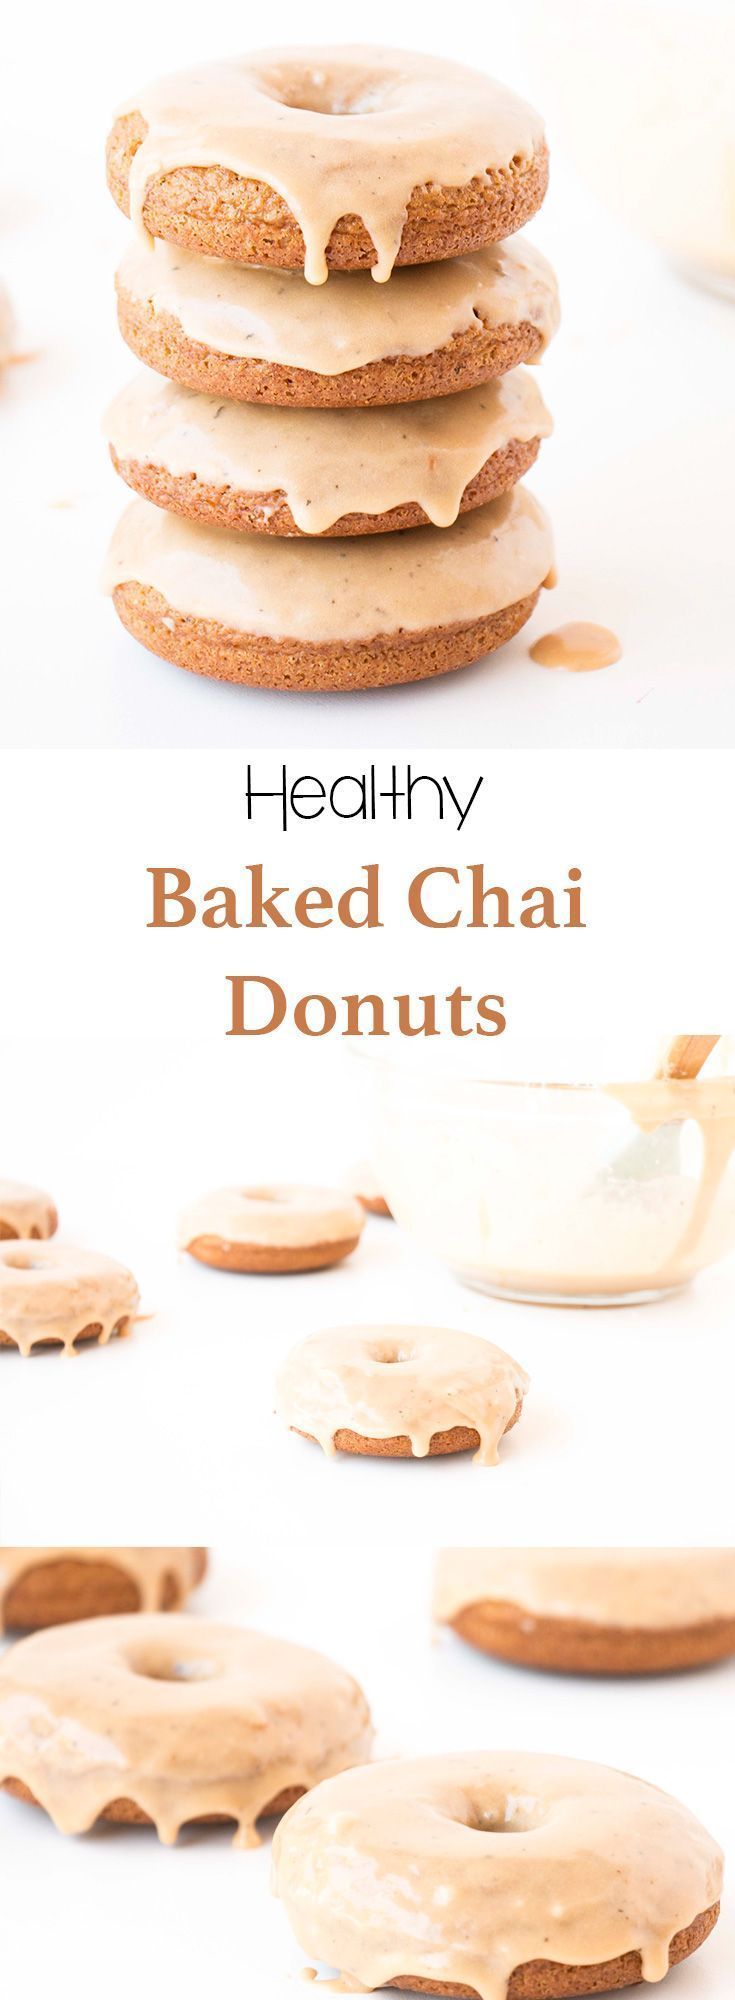 Delicious easy to make Baked Chai  Donuts that are healthier and taste way better than any store bought donuts.